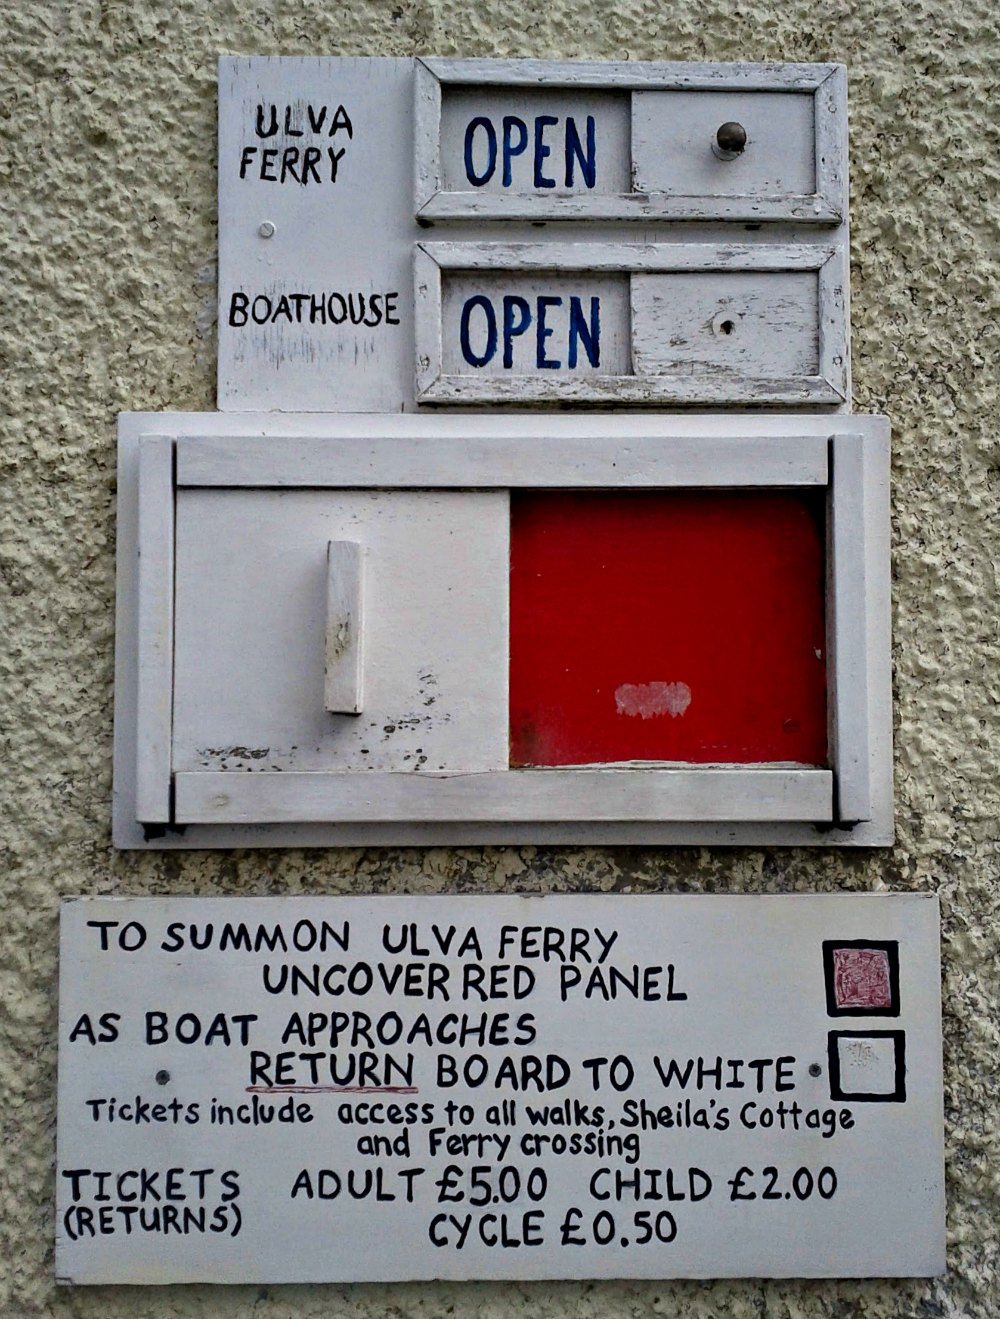 How to summon the Ulva ferry.